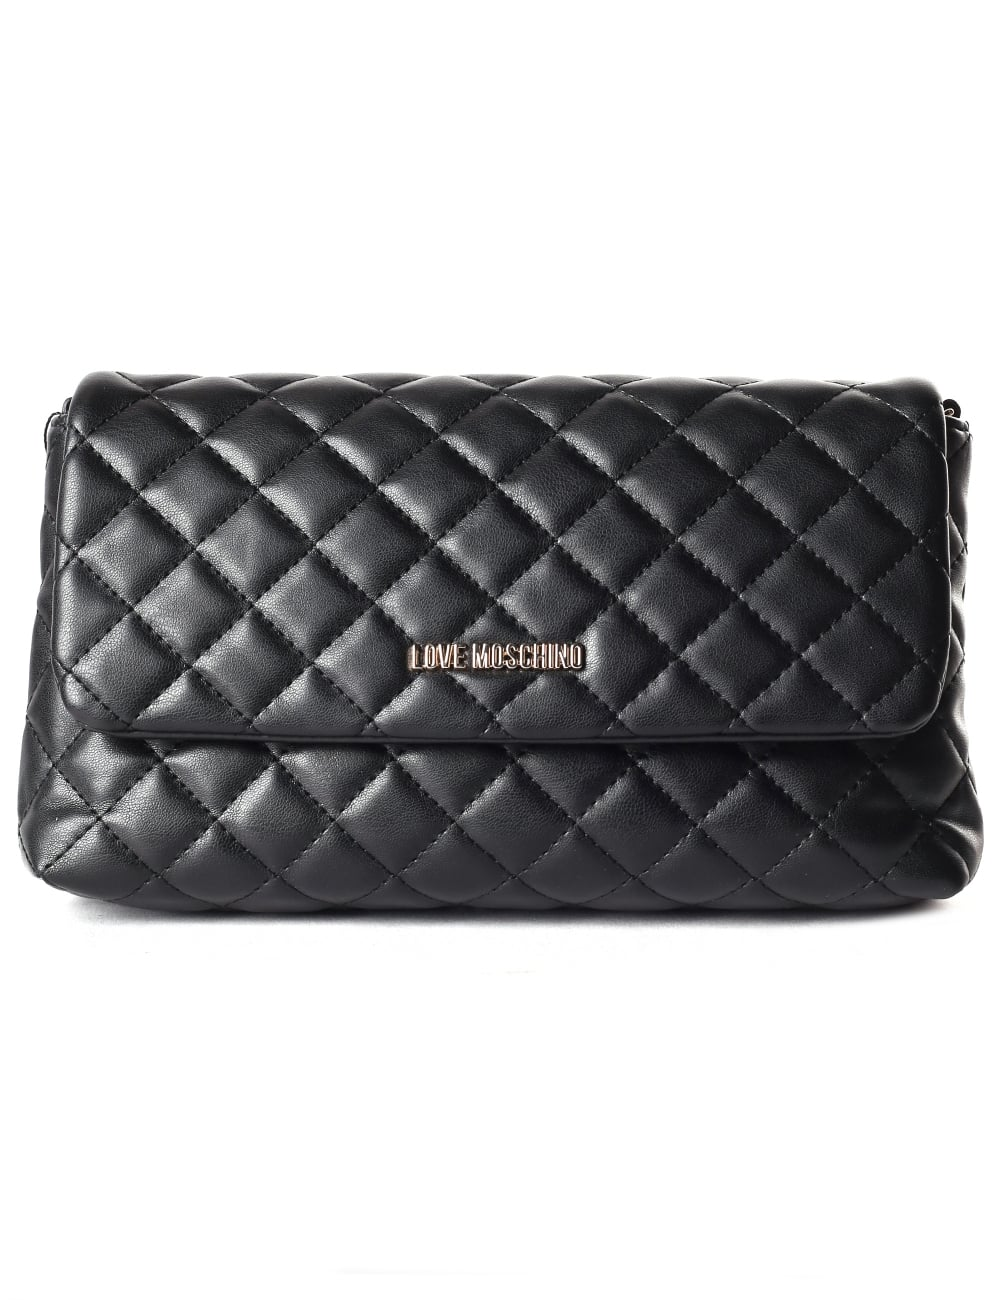 d0532d20204 Moschino Women's Quilted Love Moschino Cross Body Bag